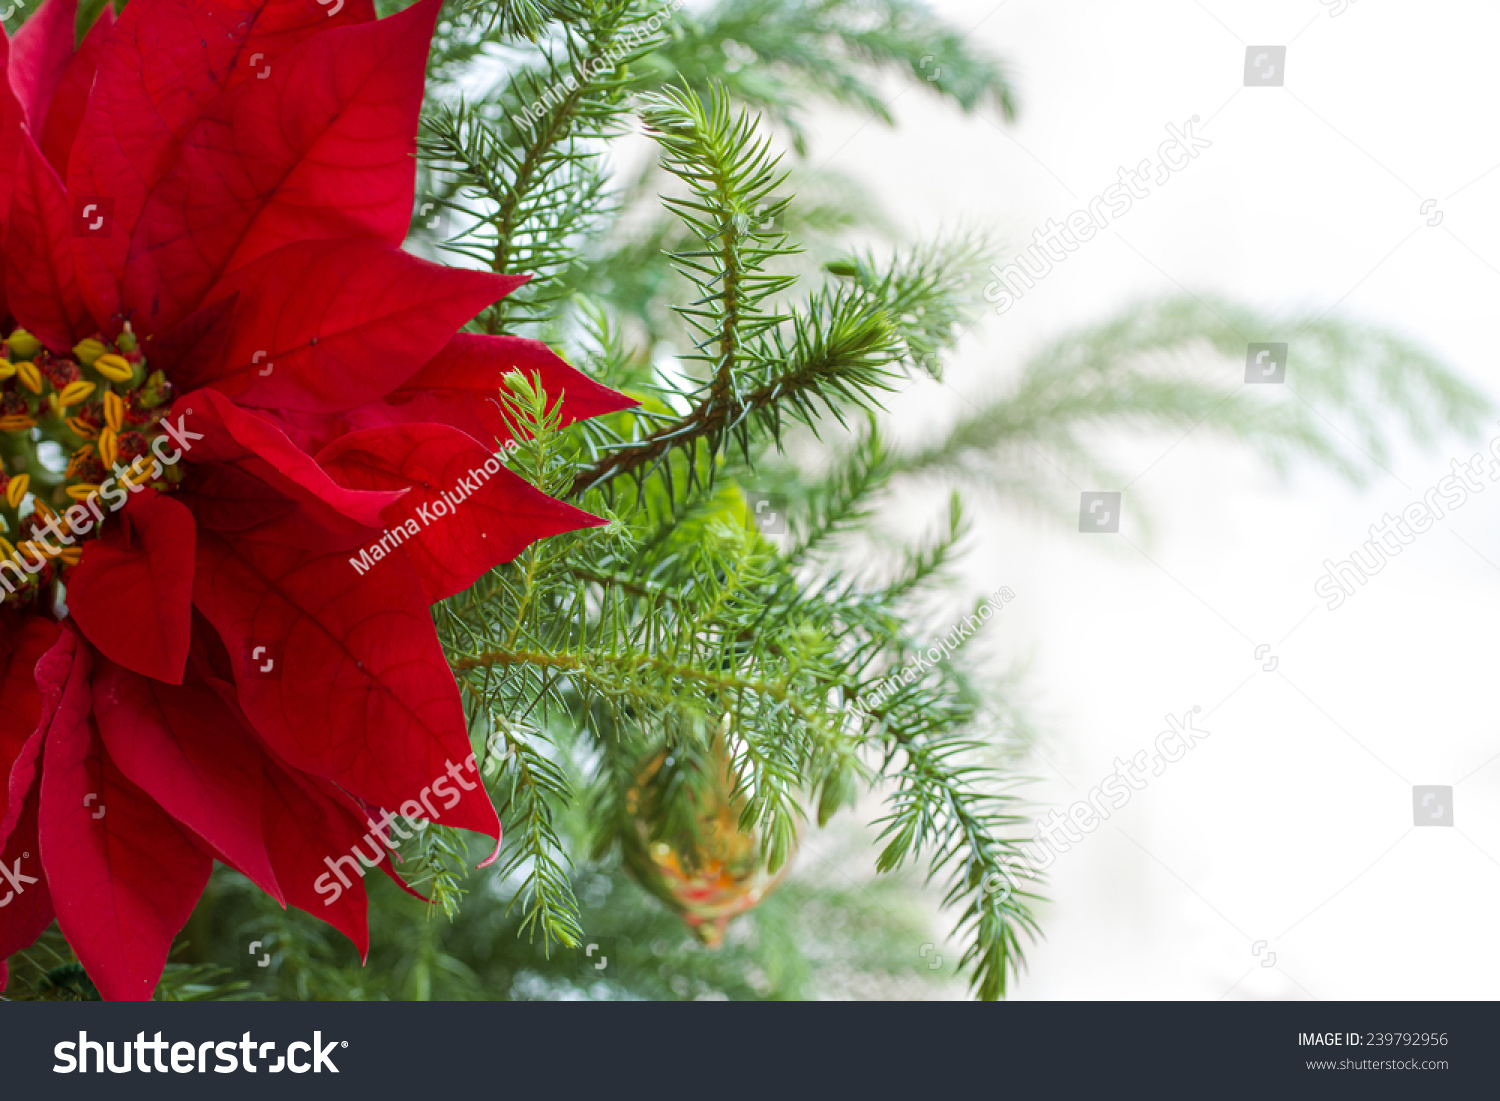 red poinsettia flower christmas decorations christmas tree branch with red poinsettia flower on white - White Christmas Flower Decorations